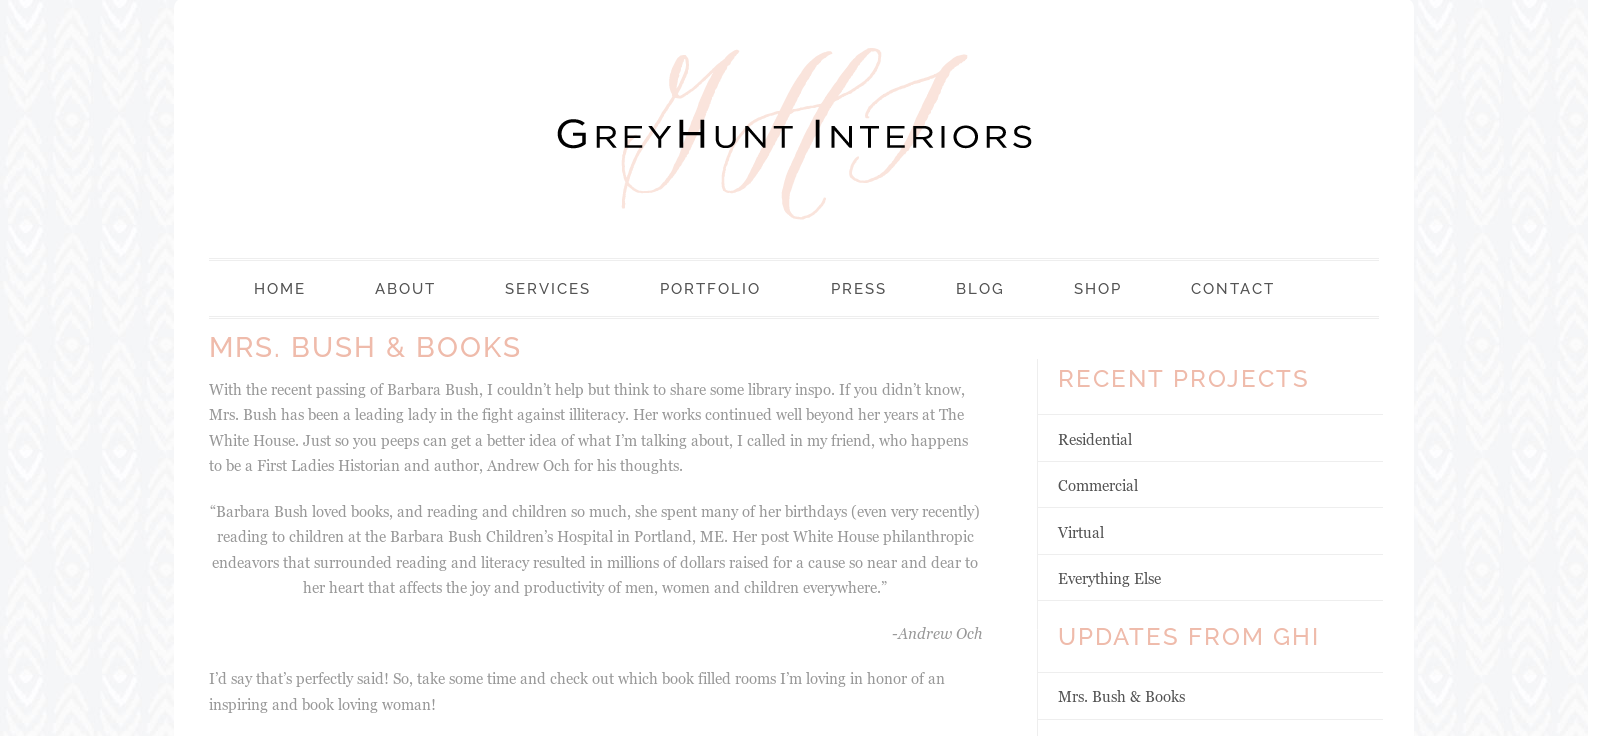 Grey Hunt Interiors Image